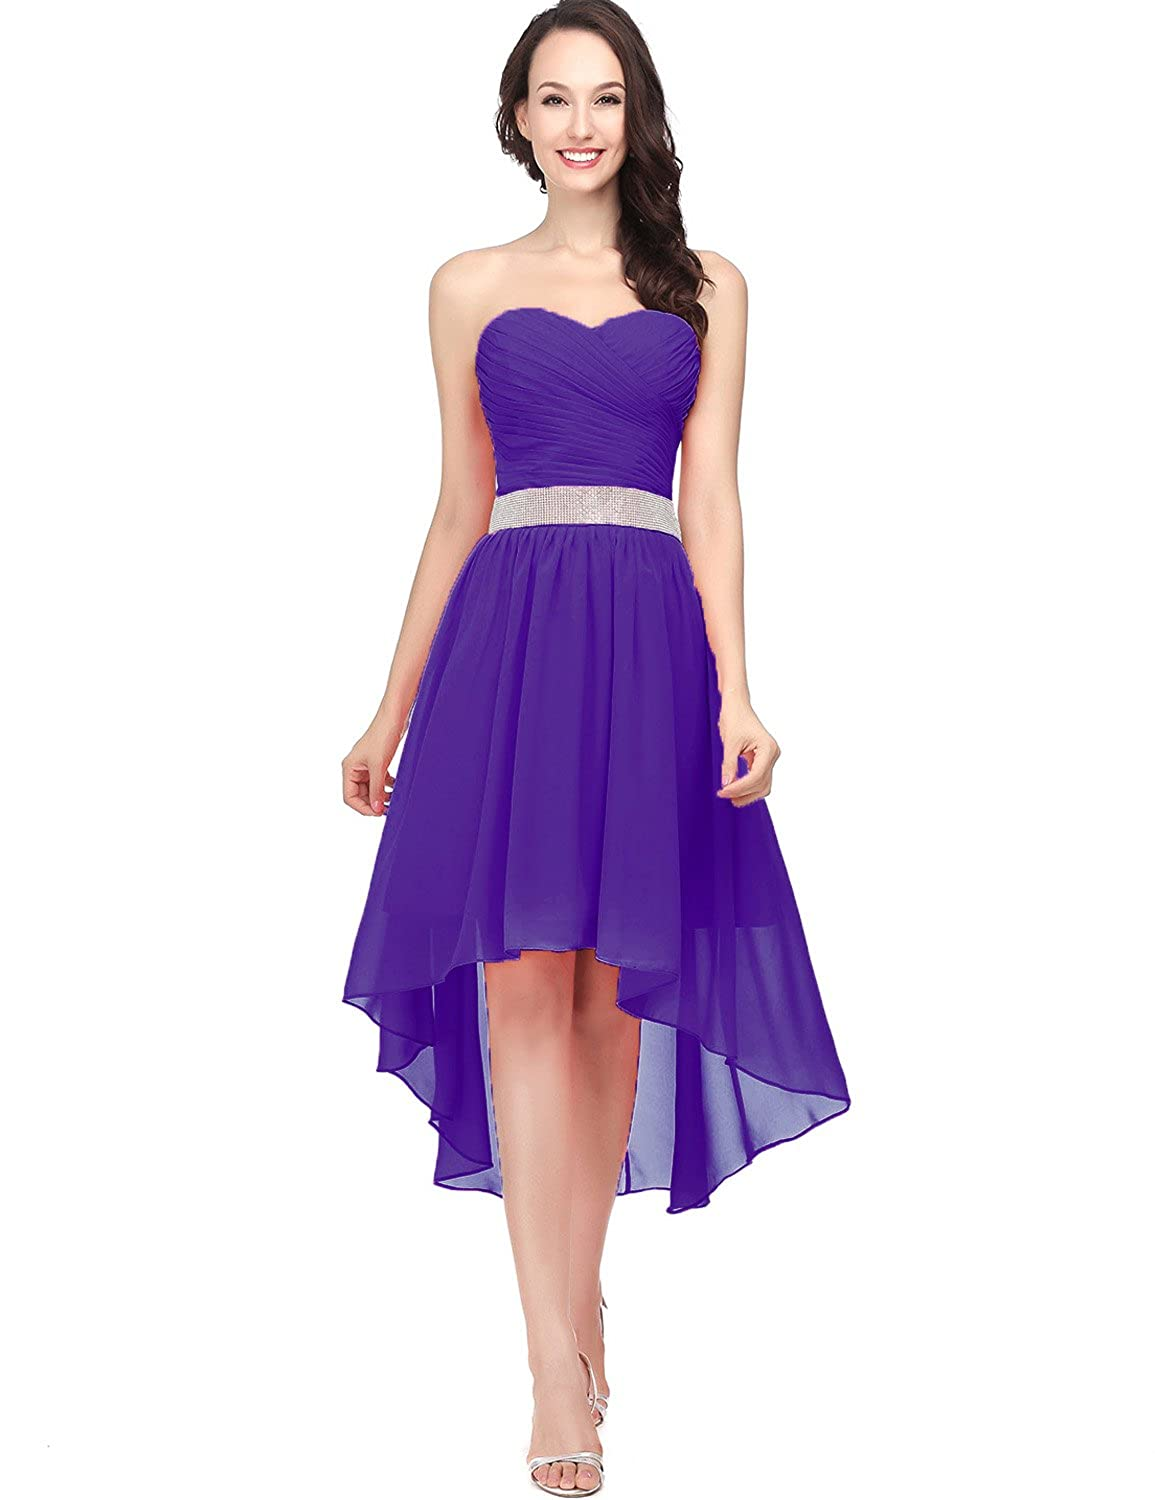 400purple Sarahbridal Women's Tulle HiLow Beading Prom Dresses Evening Homecoming Cocktail Gowns